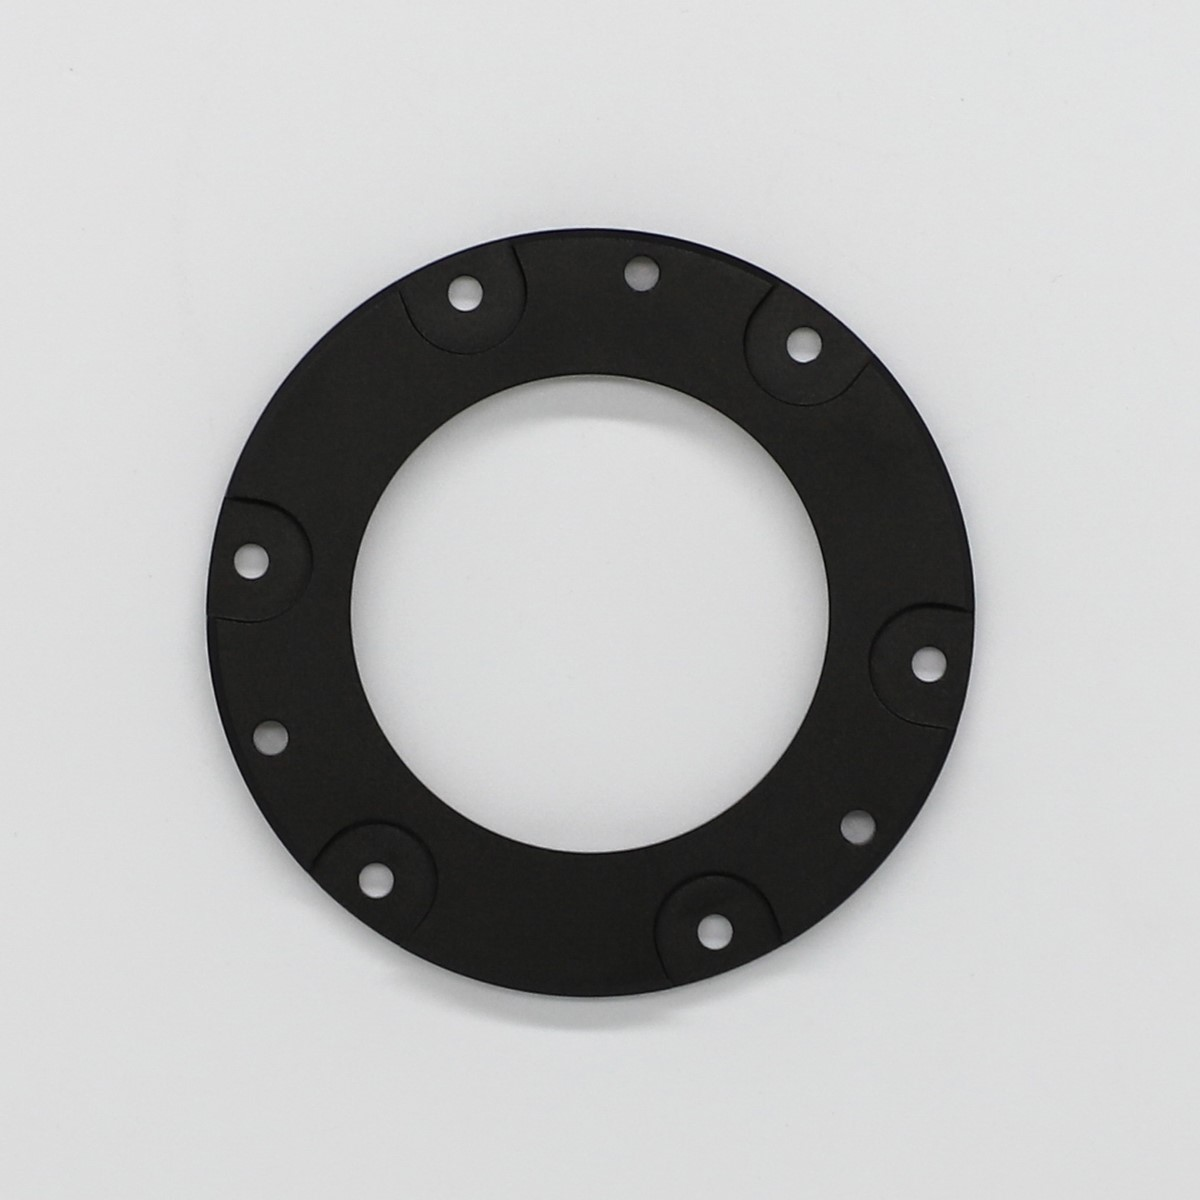 bulk cnc camera housing parts casting high performance at discount-2